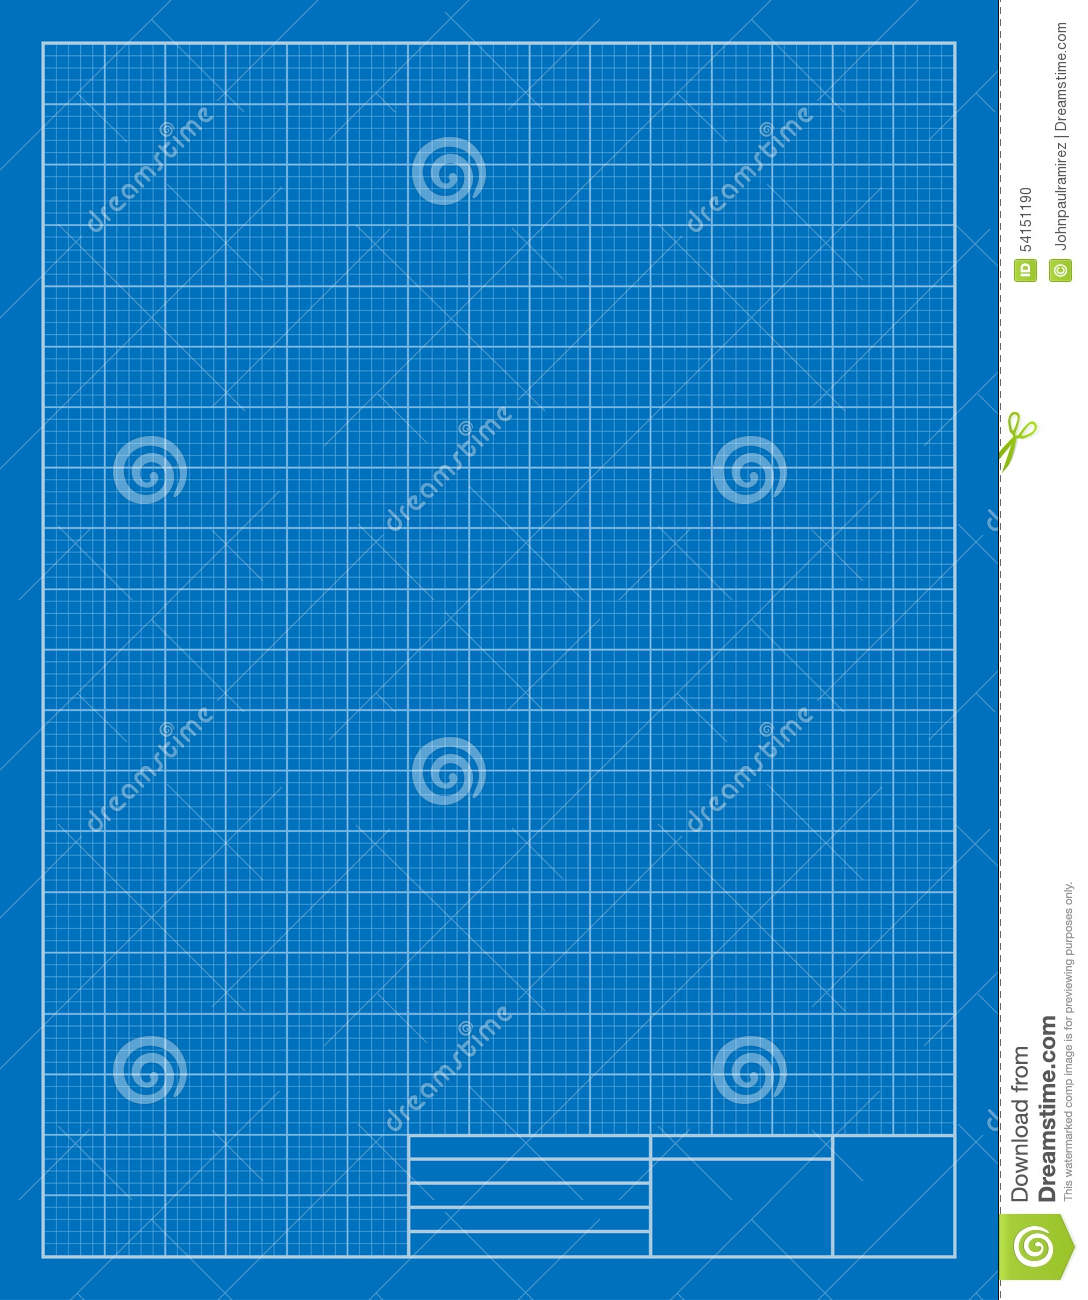 Vertical drafting blueprint grid architecture stock vector vertical drafting blueprint grid architecture malvernweather Images